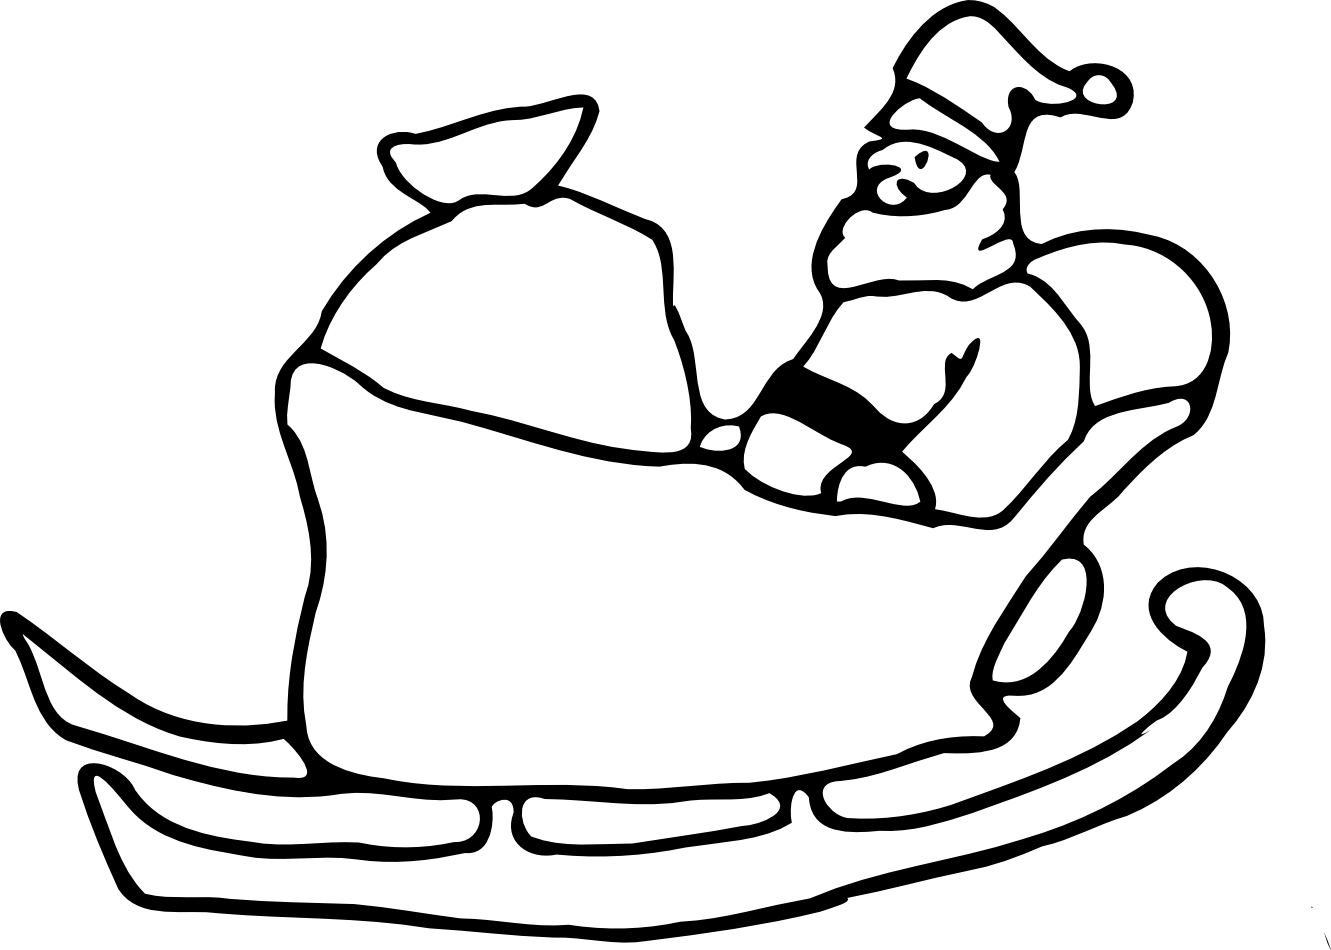 coloring pages sleigh - photo#24